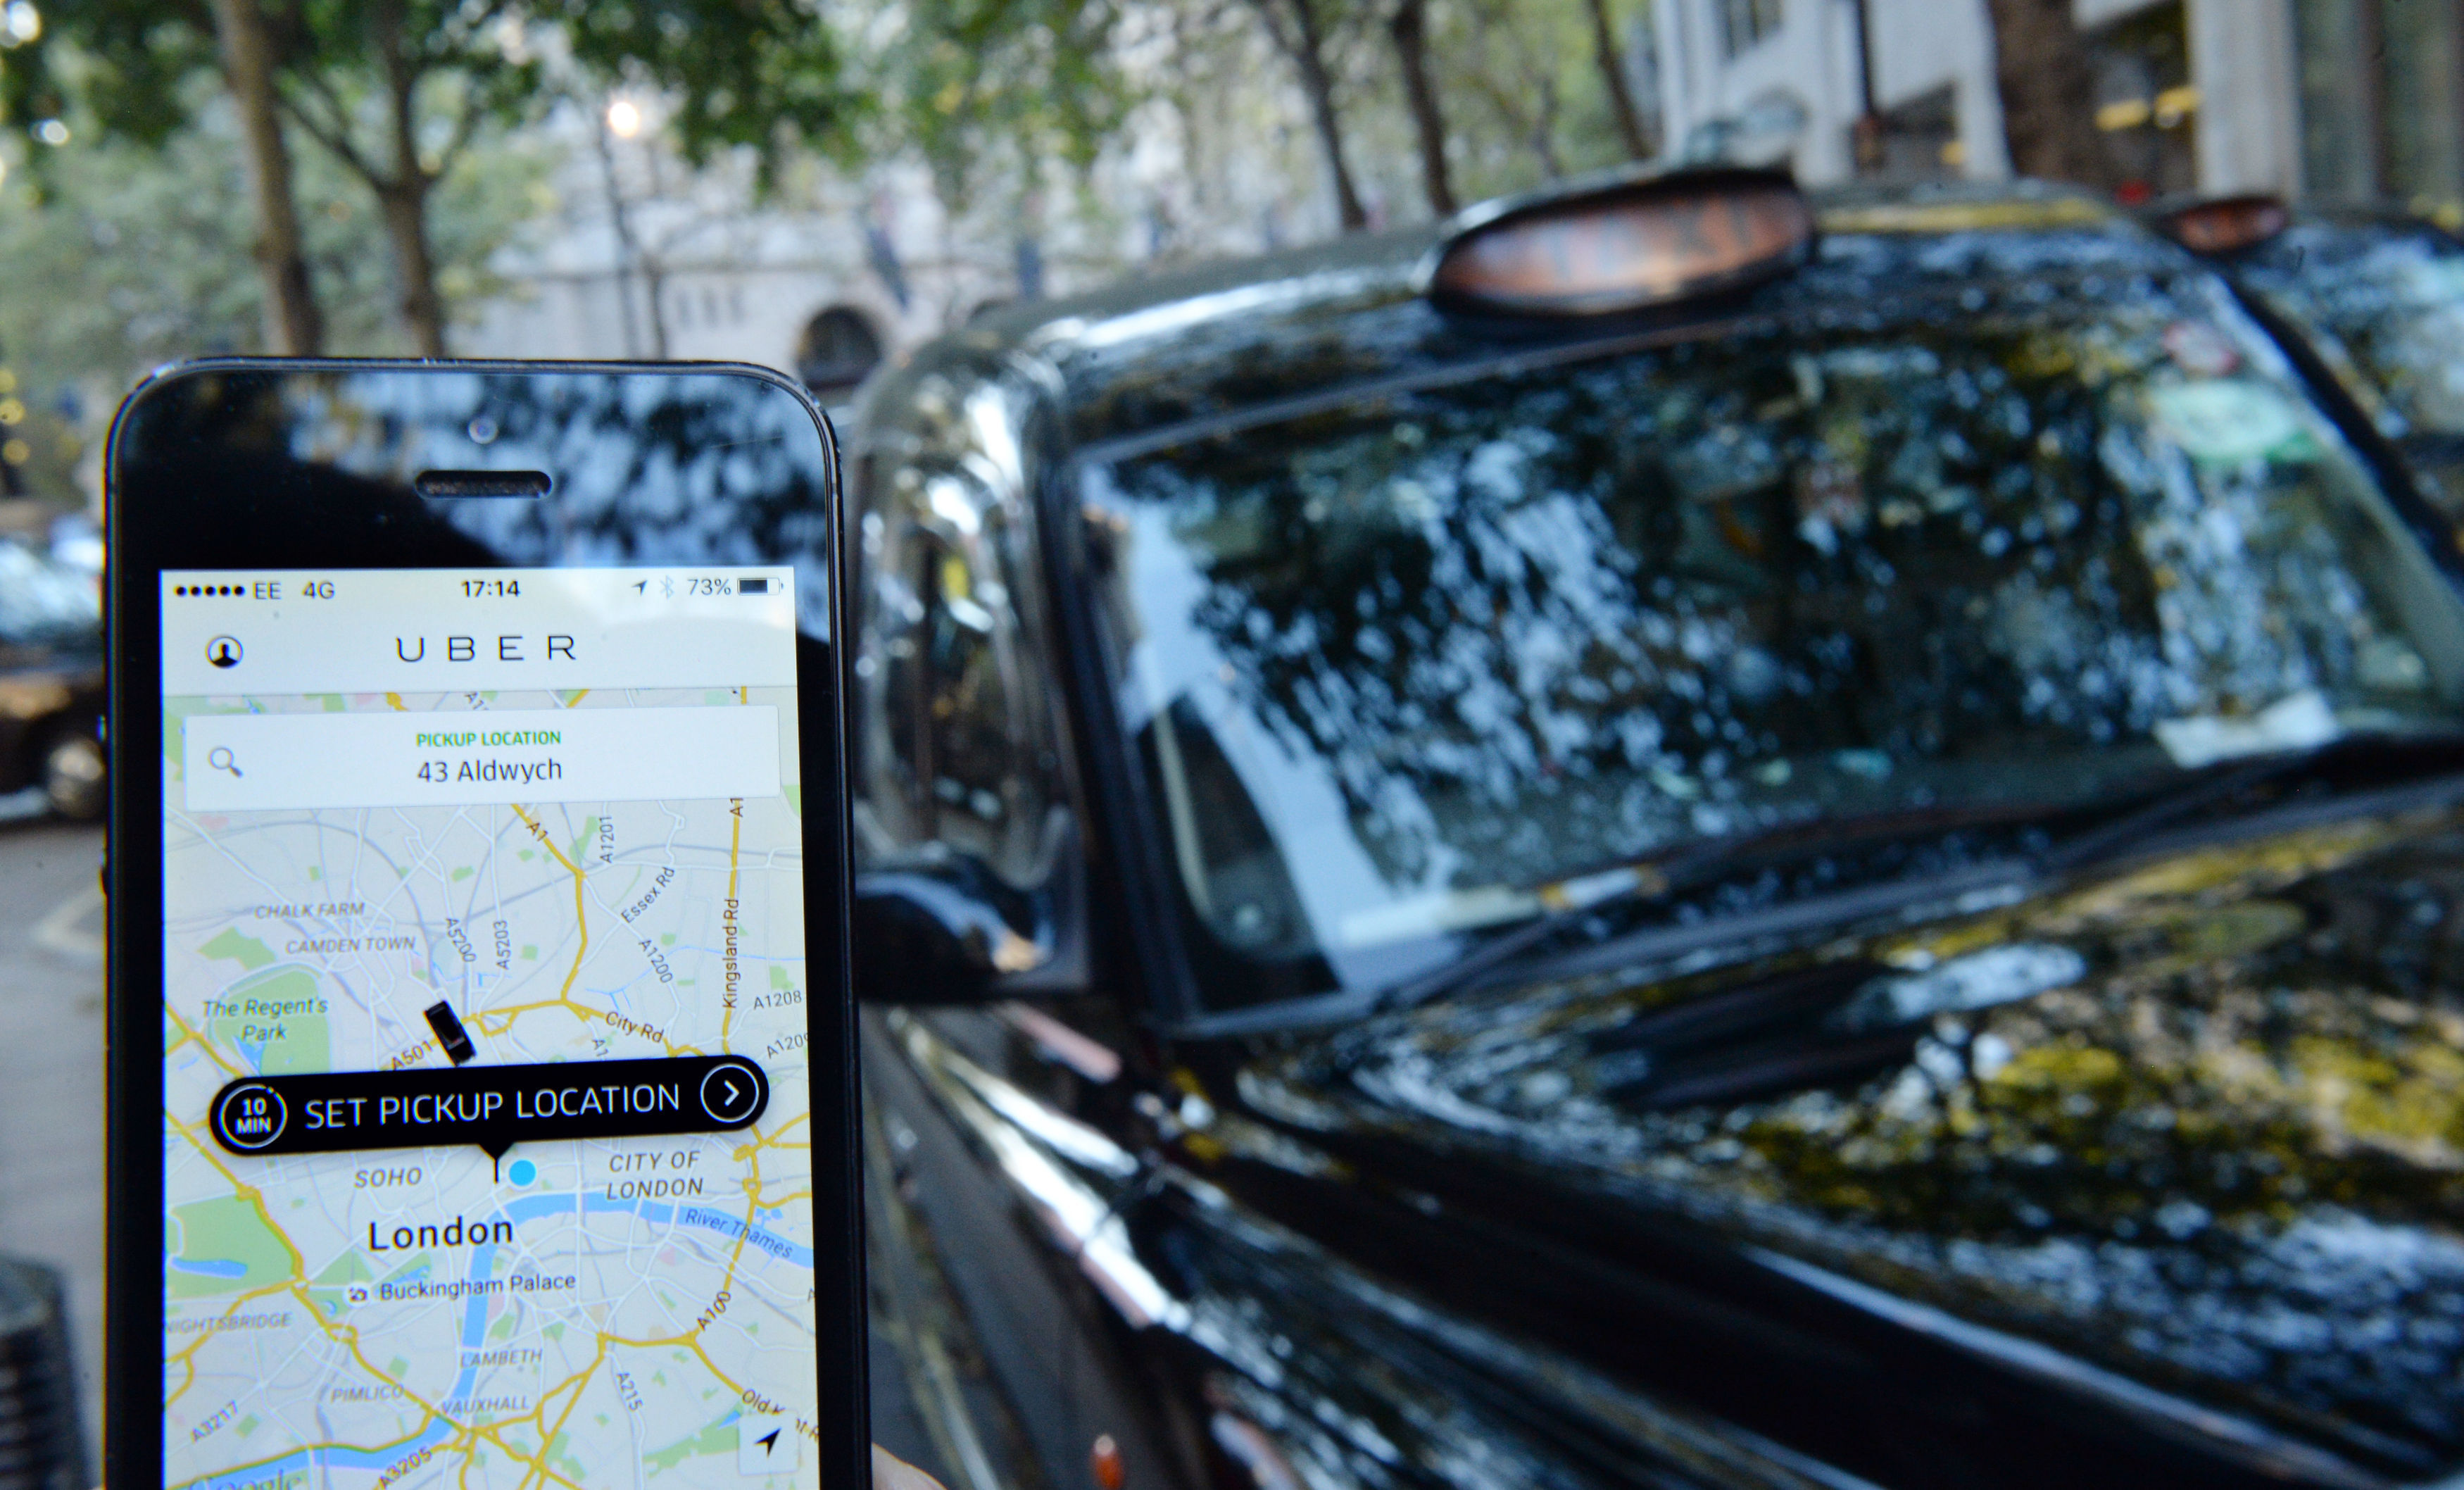 Londoners Reveal Their Thoughts On The Uber Ban